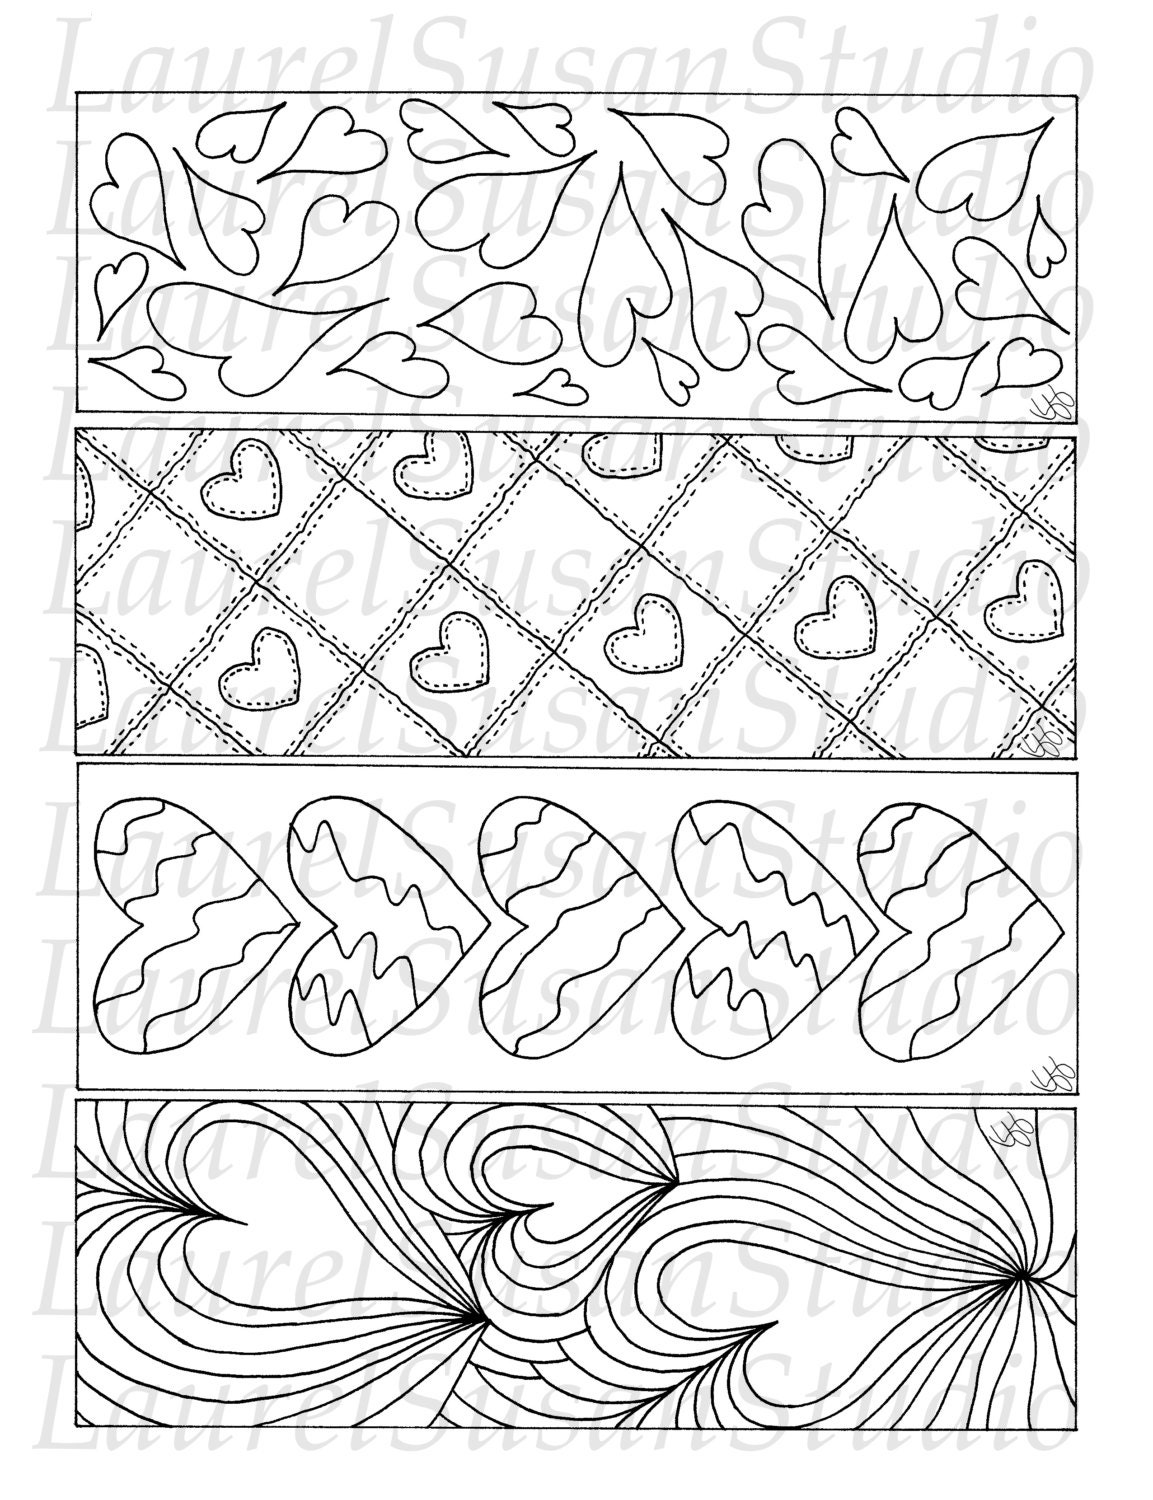 Printable Coloring Bookmarks Free : Bookmark coloring pages